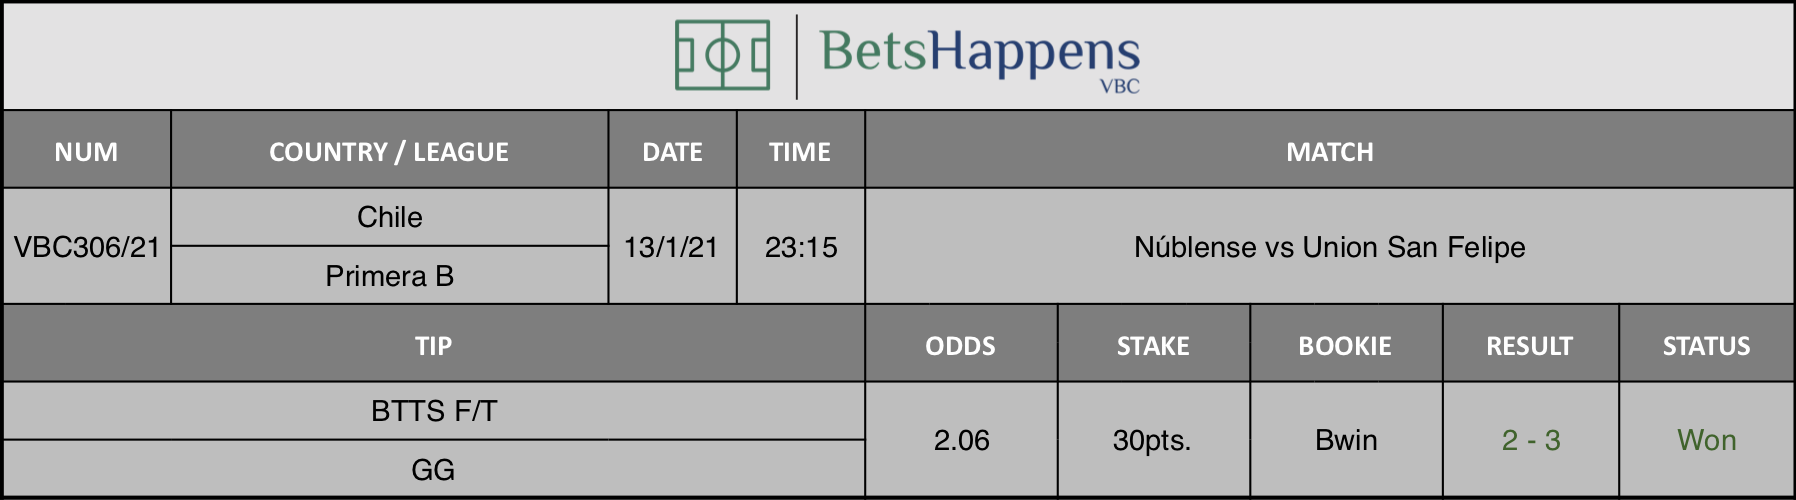 Results of our tip for the Núblense vs Union San Felipe  match where BTTS F/T  GG is recommended.